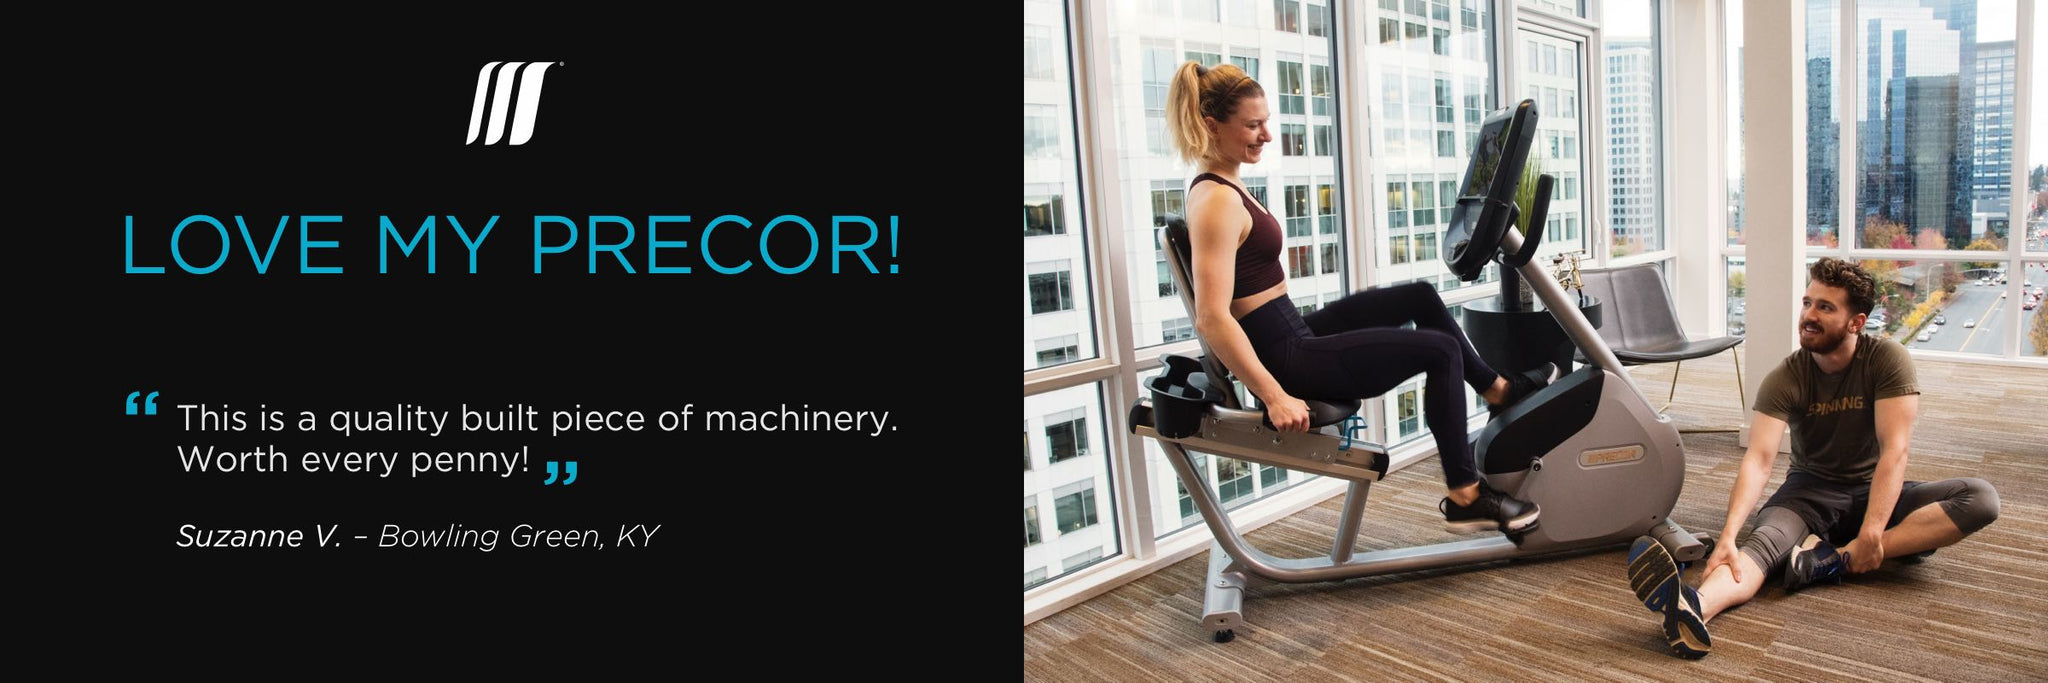 Home exerciser working out on a Precor recumbent bike RBK with their partner stretching on the floor next to them in their home workout room